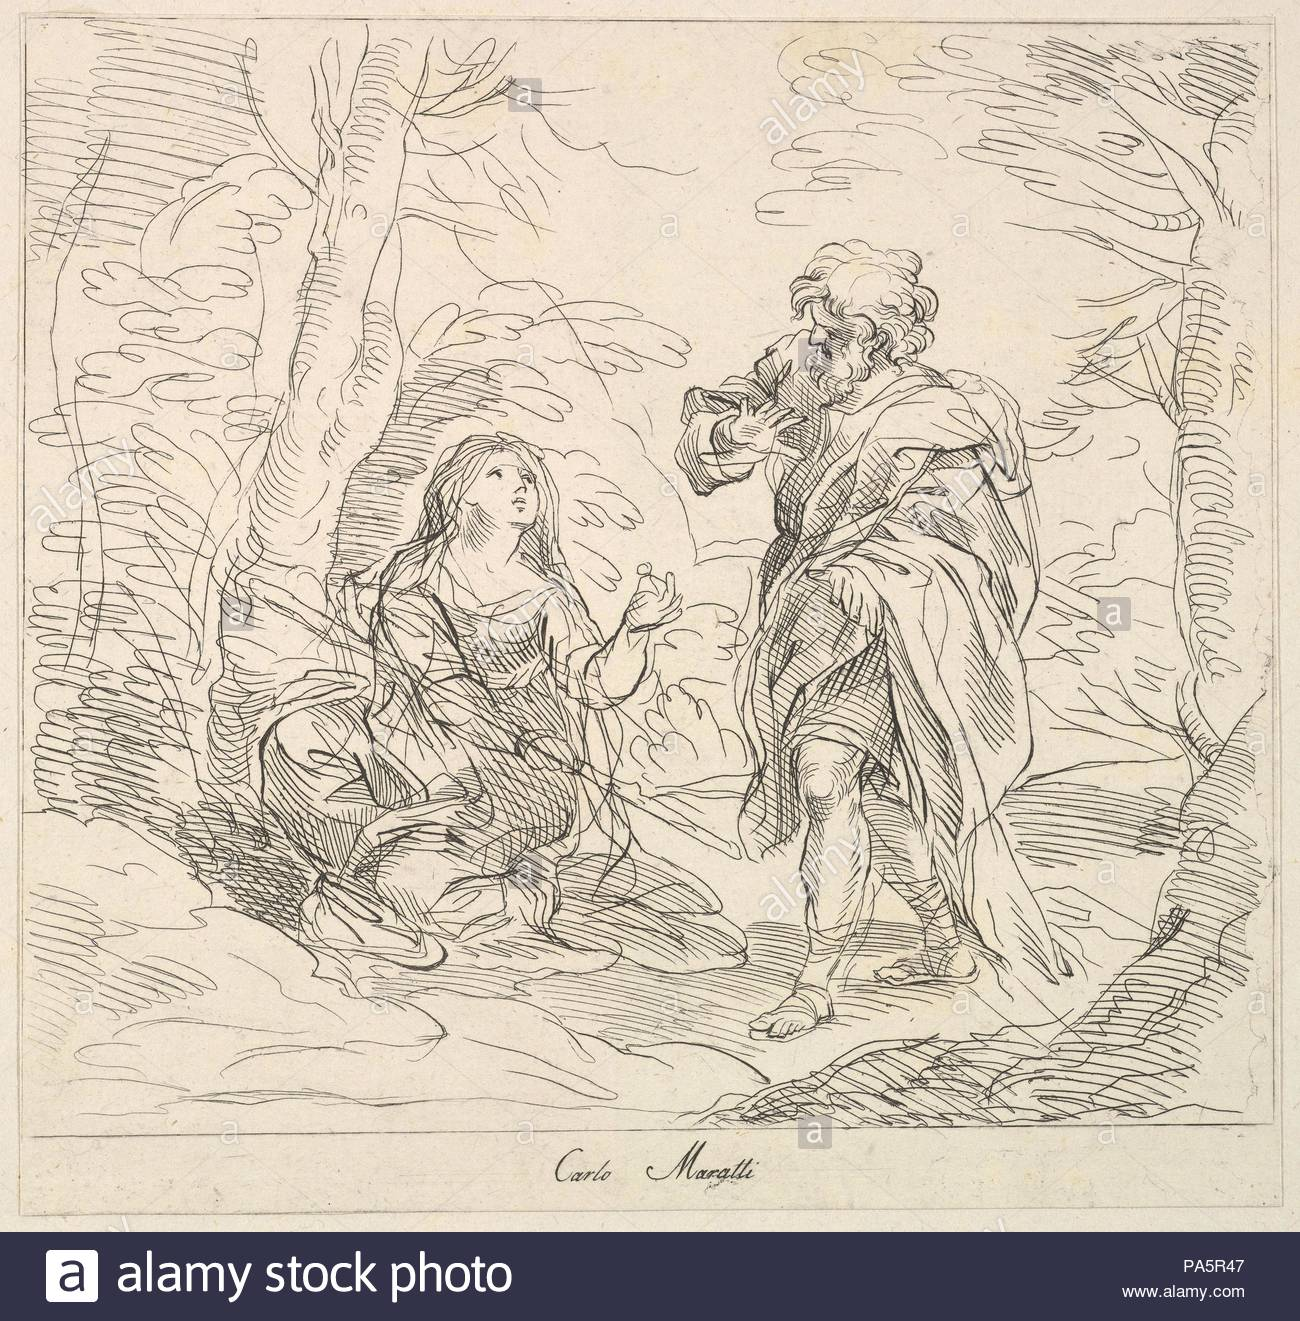 Seated woman and Bearded Man in a Landscape, 1740–1802, Etching, sheet: 10 1/16 x 13 1/8 in. (25.5 x 33.3 cm), Prints, Attributed to Giuseppe Canale (Italian, 1725–1802), After Carlo Maratti (Italian, Camerano 1625–1713 Rome). - Stock Image